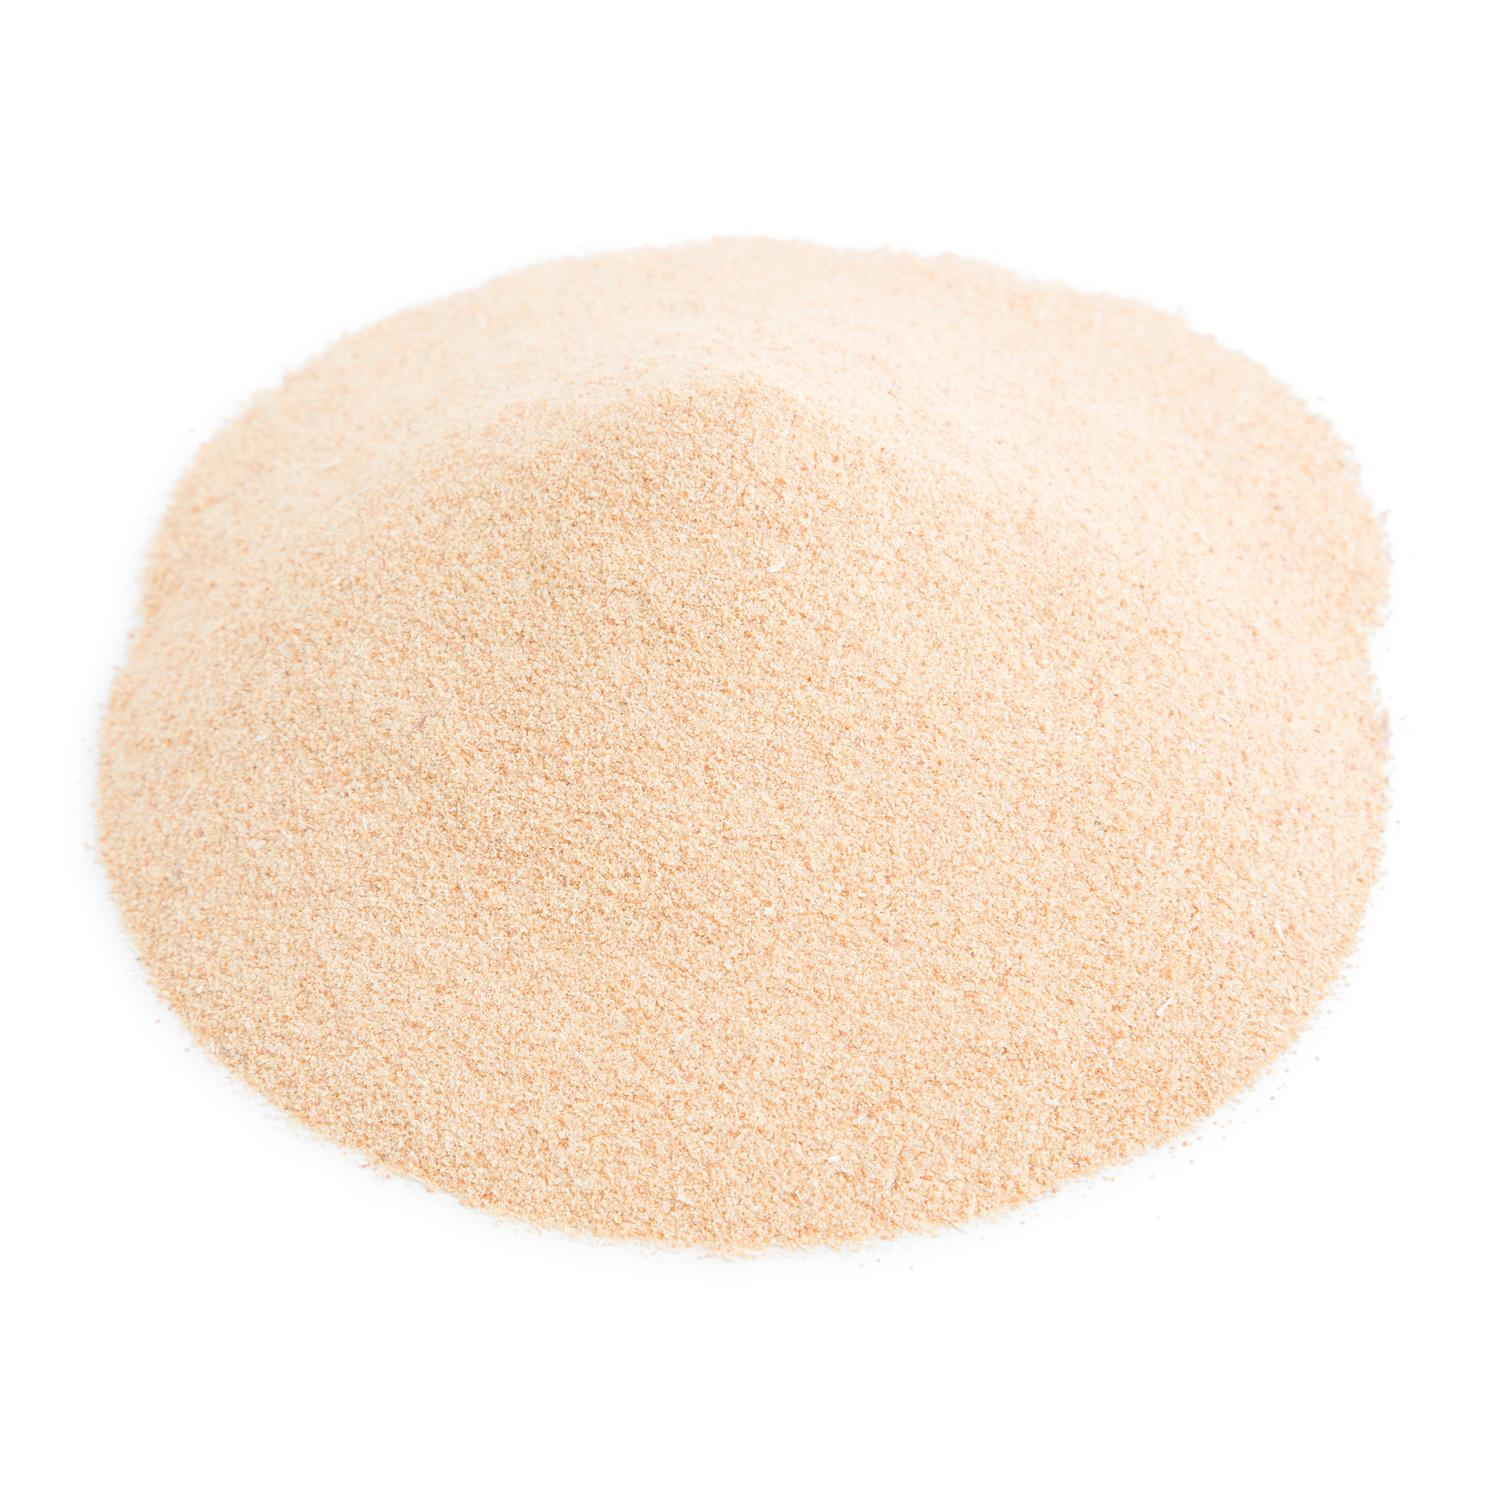 image of Spice Garlic Granulated